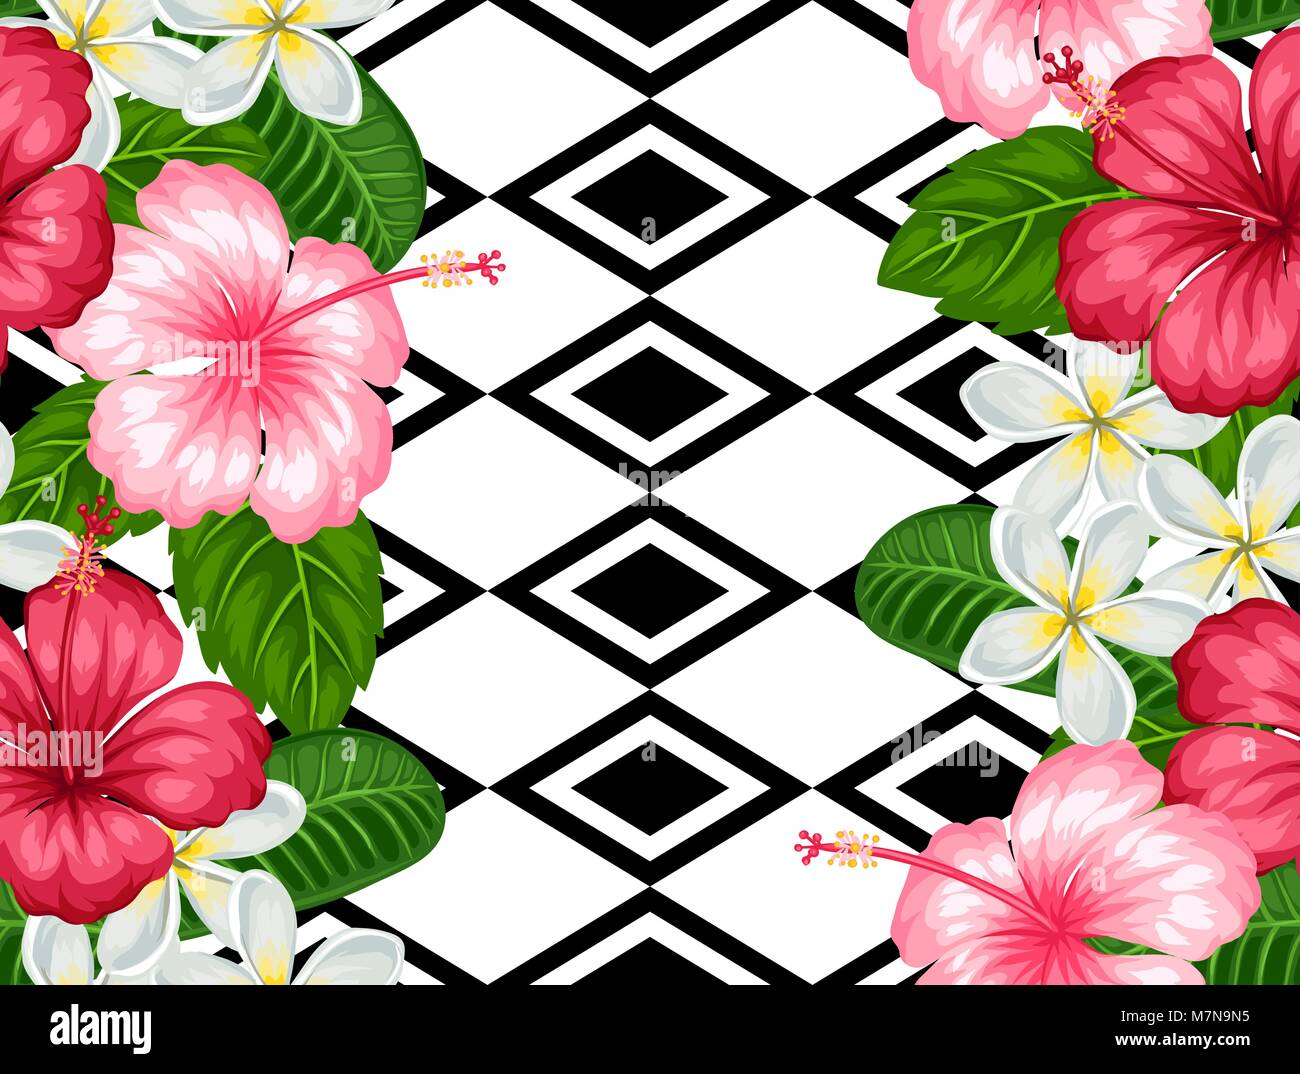 Seamless pattern with tropical flowers hibiscus and plumeria stock seamless pattern with tropical flowers hibiscus and plumeria background made without clipping mask easy to use for backdrop textile wrapping paper izmirmasajfo Gallery